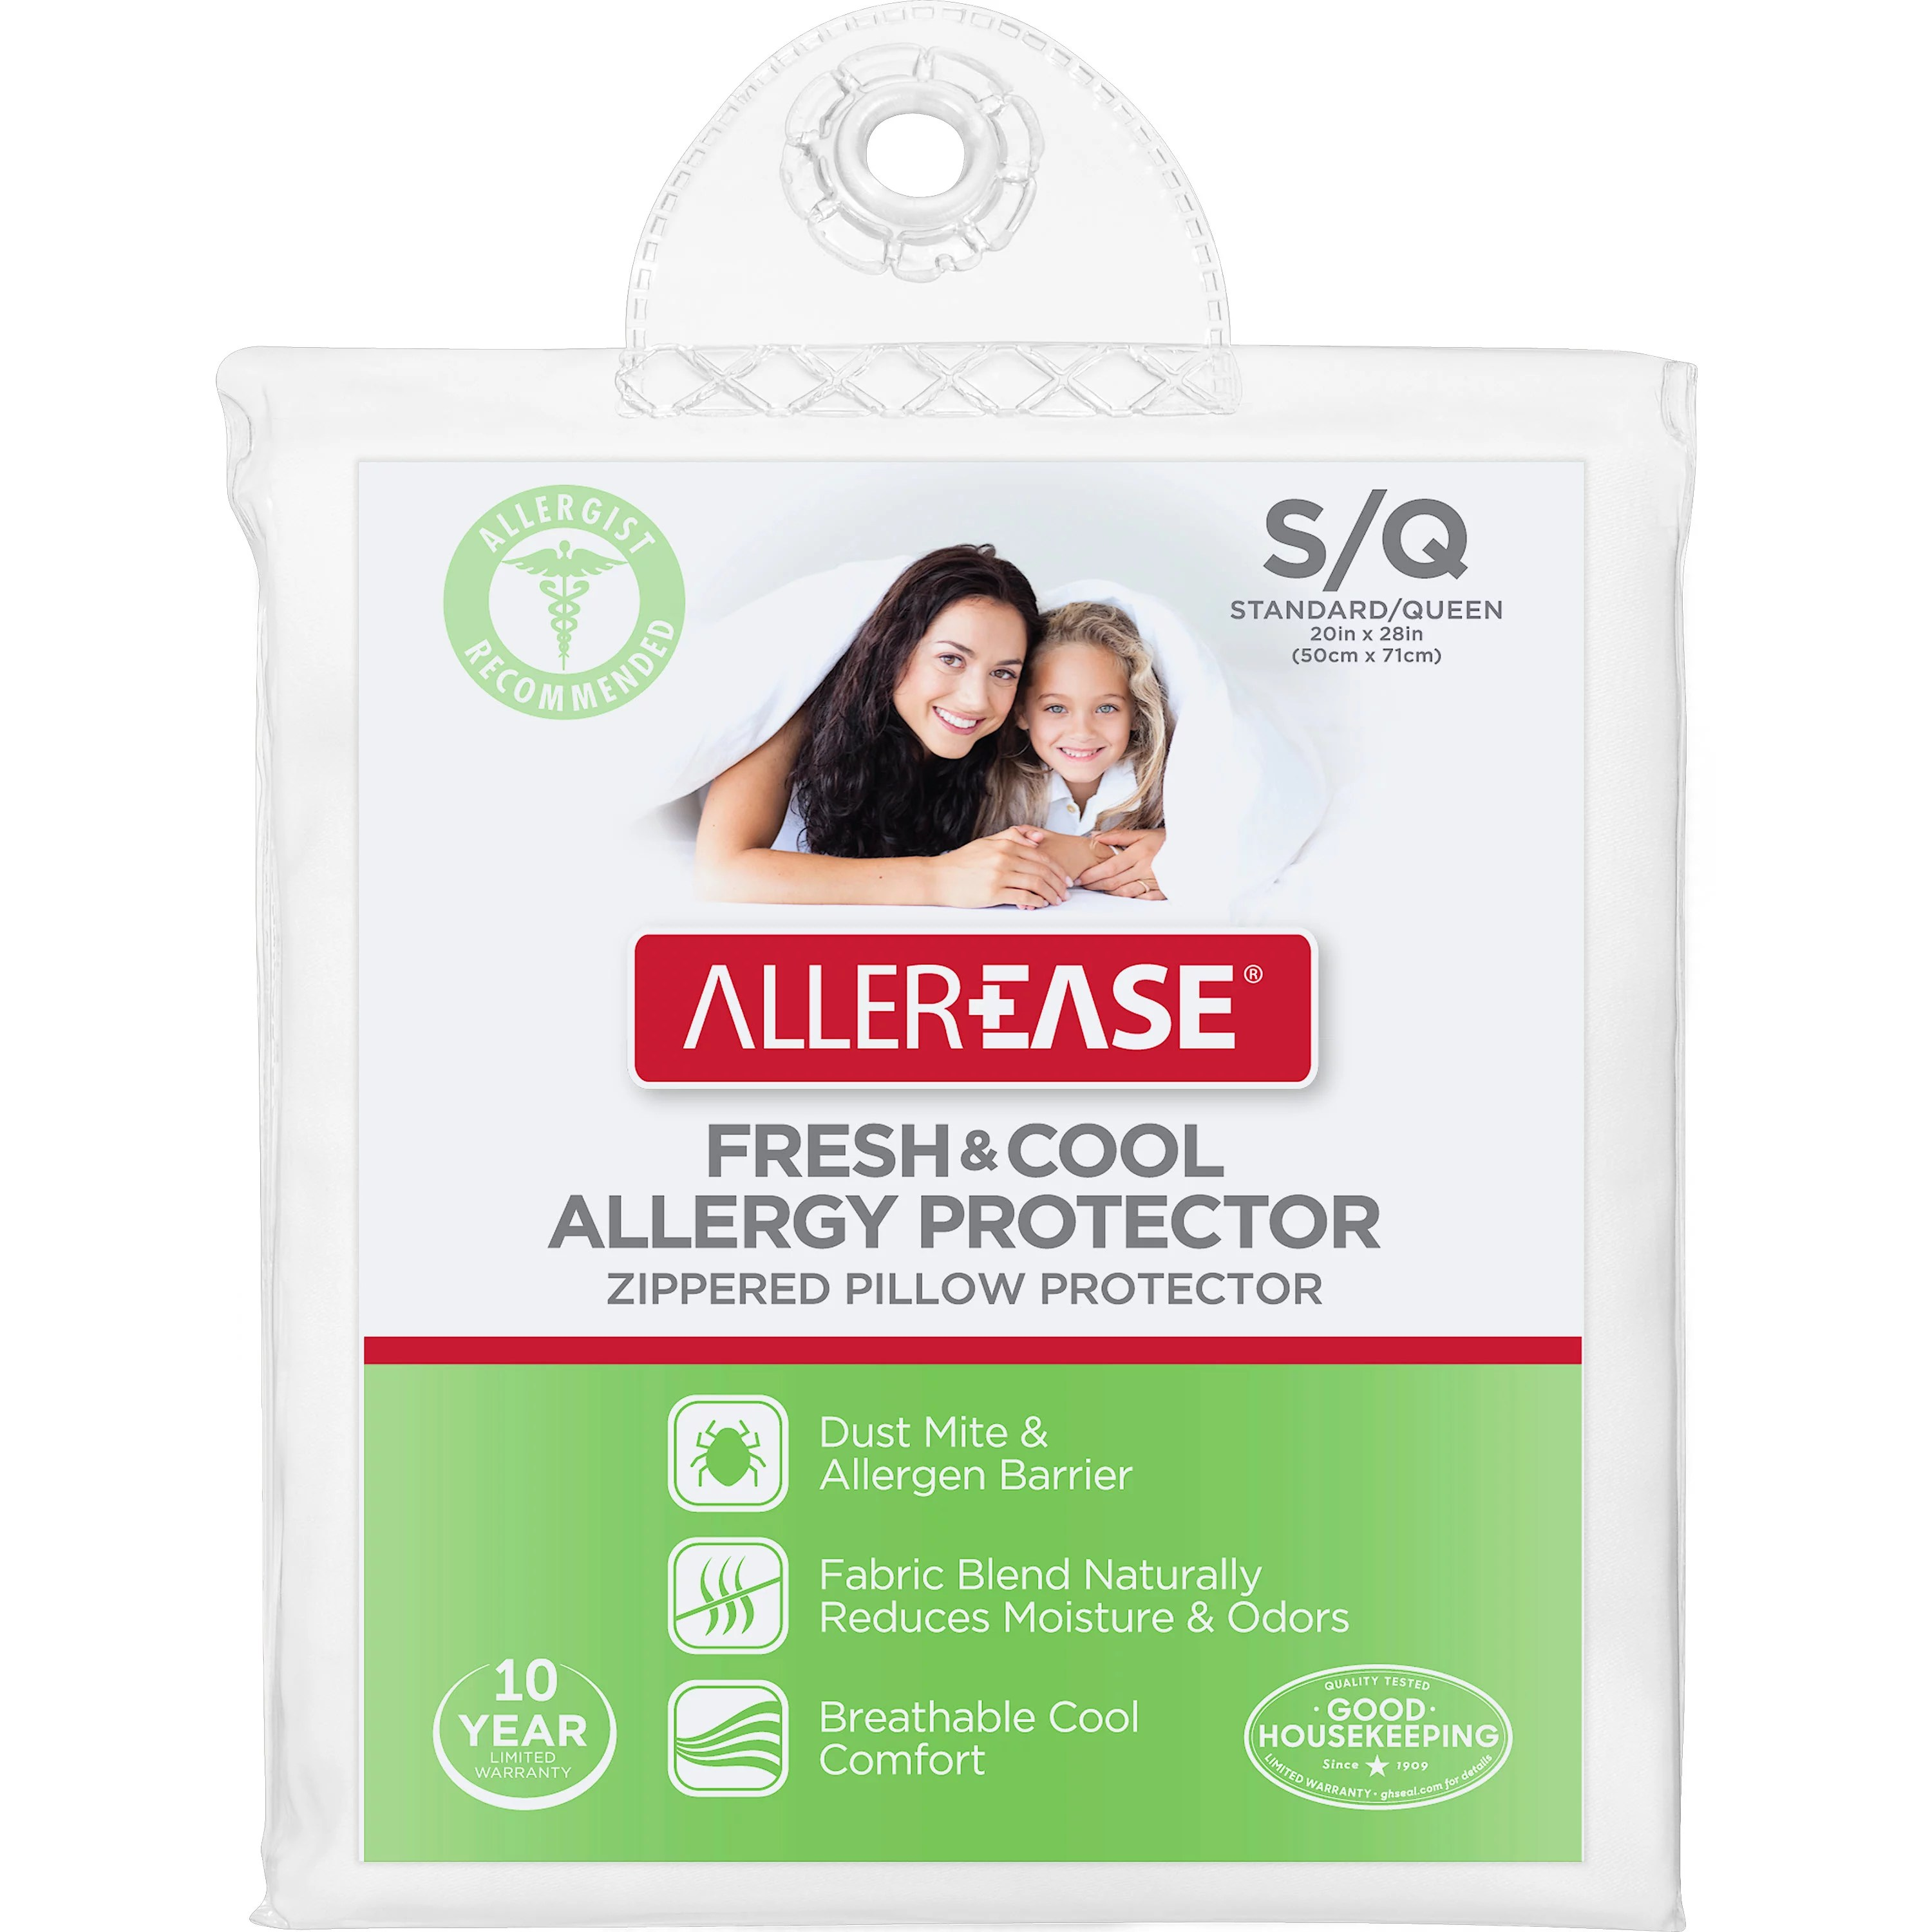 allerease fresh cool allergy protector zippered pillow protector standard queen